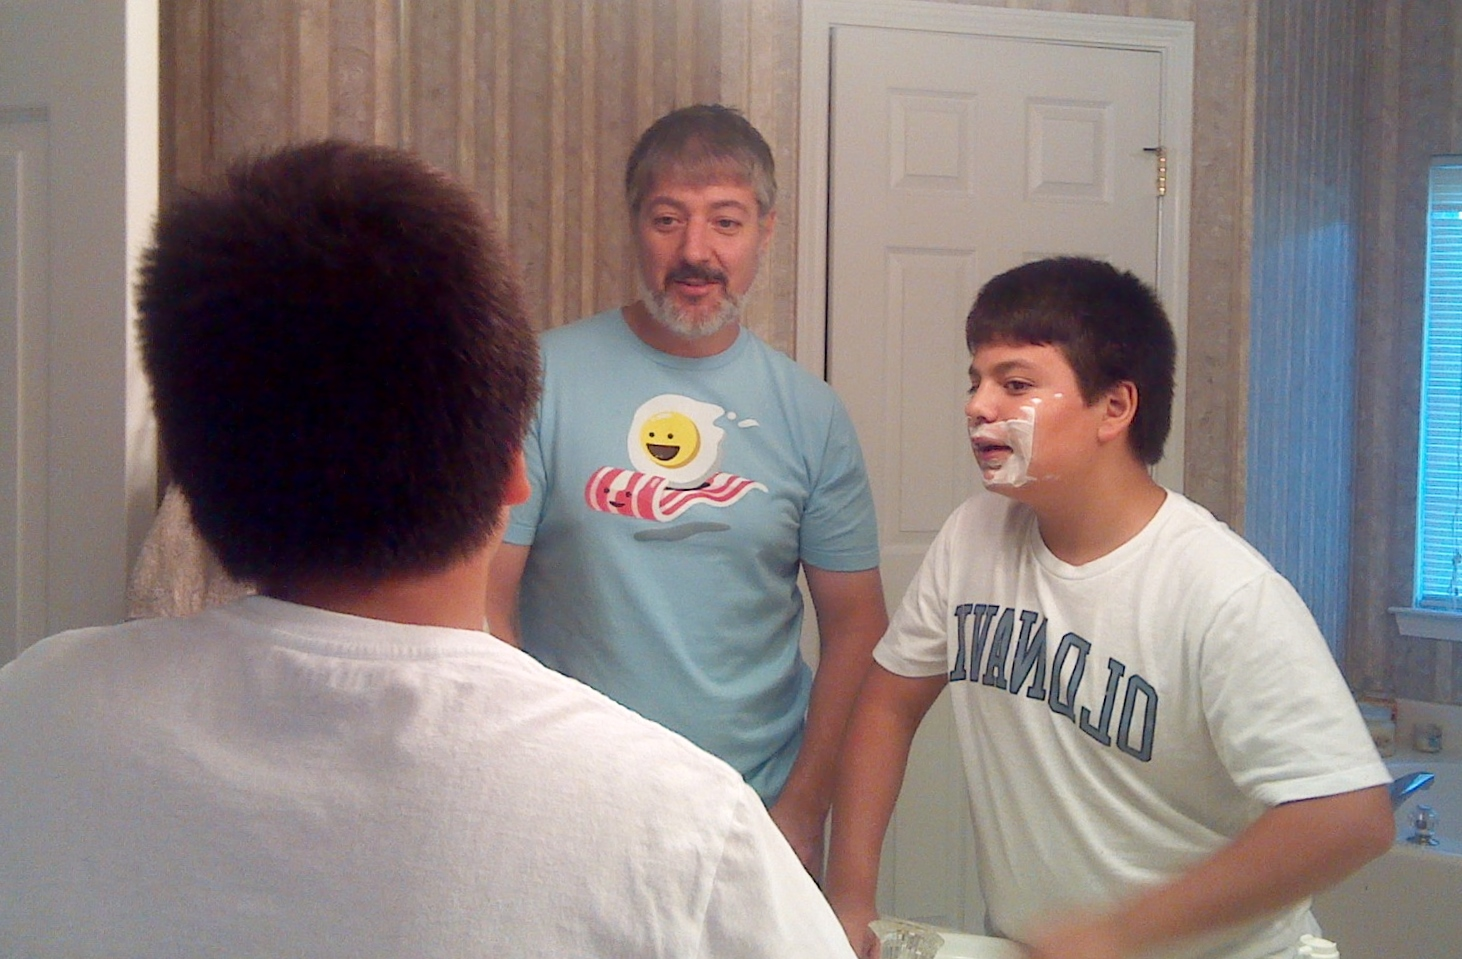 Matthew Shaving - Aug 2014